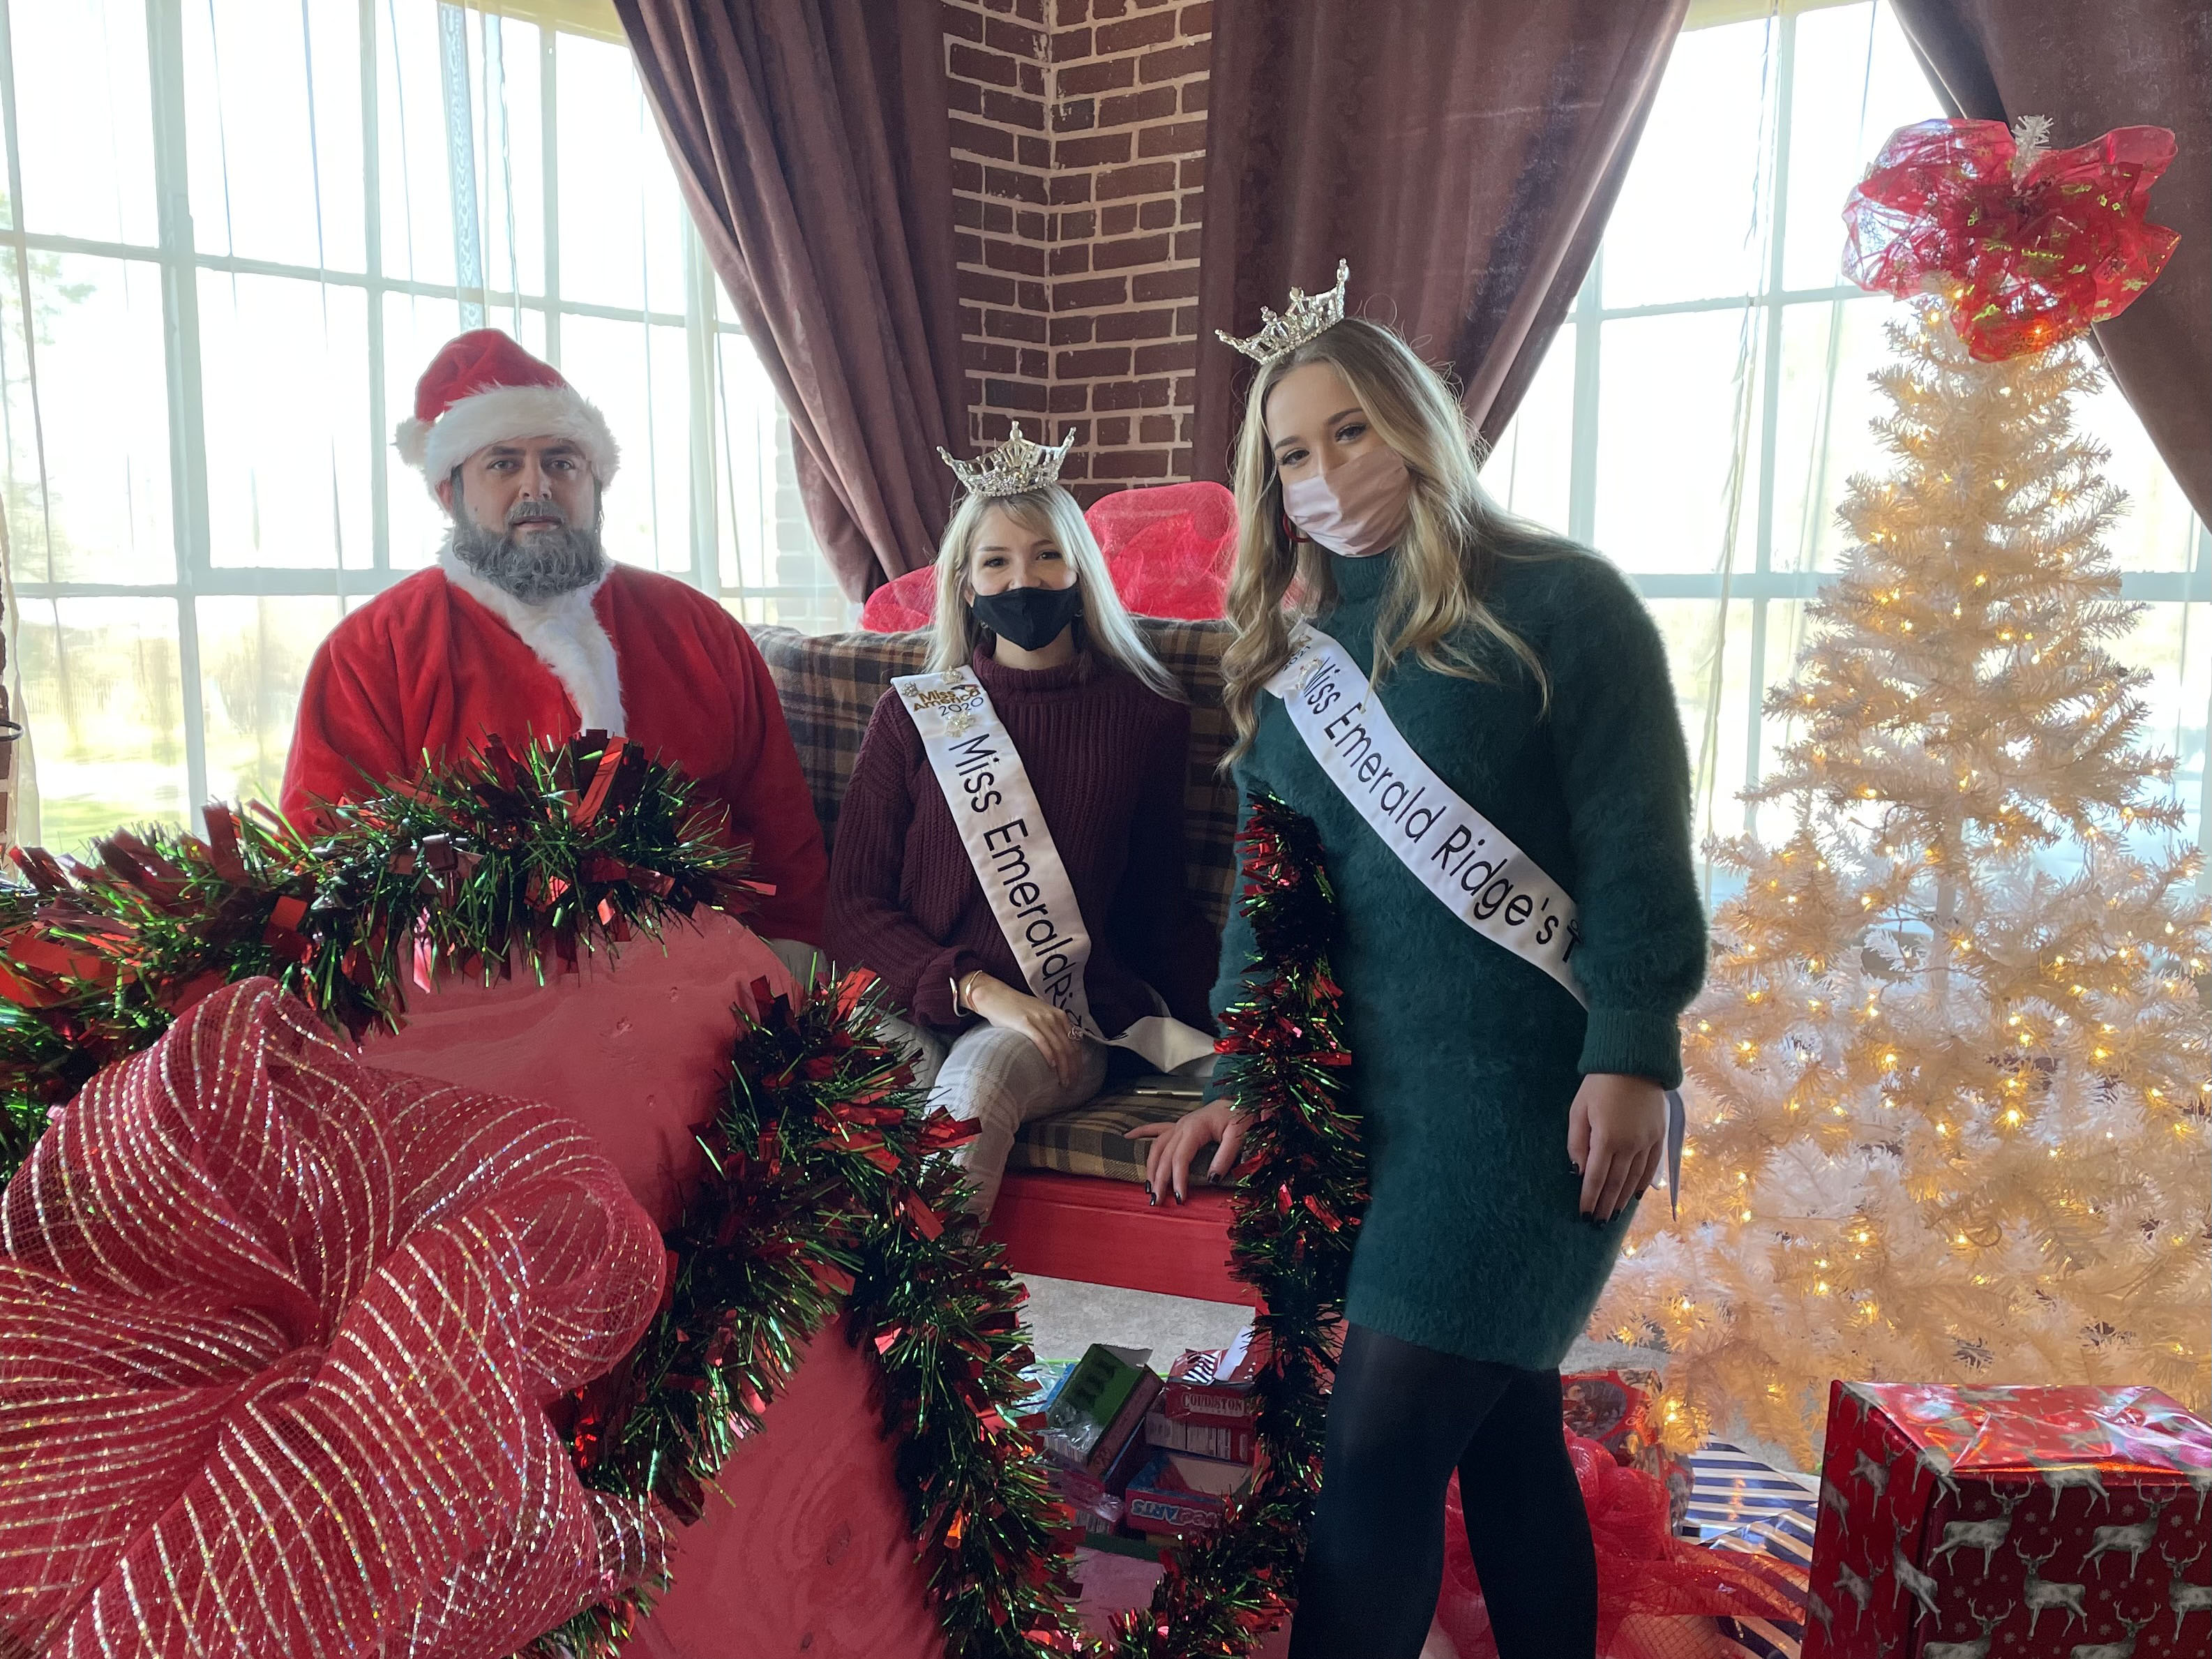 Santa Claus and local beauty pageant queens Miss Emerald Ridge Tessa Rabideau and Miss Emerald Ridge Outstanding Teen McKenna Harvey pose for a group photo on Saturday, Nov. 28 during the Spruce Pine Southern Christmas Show. (MNJ photo/Juliana Walker)